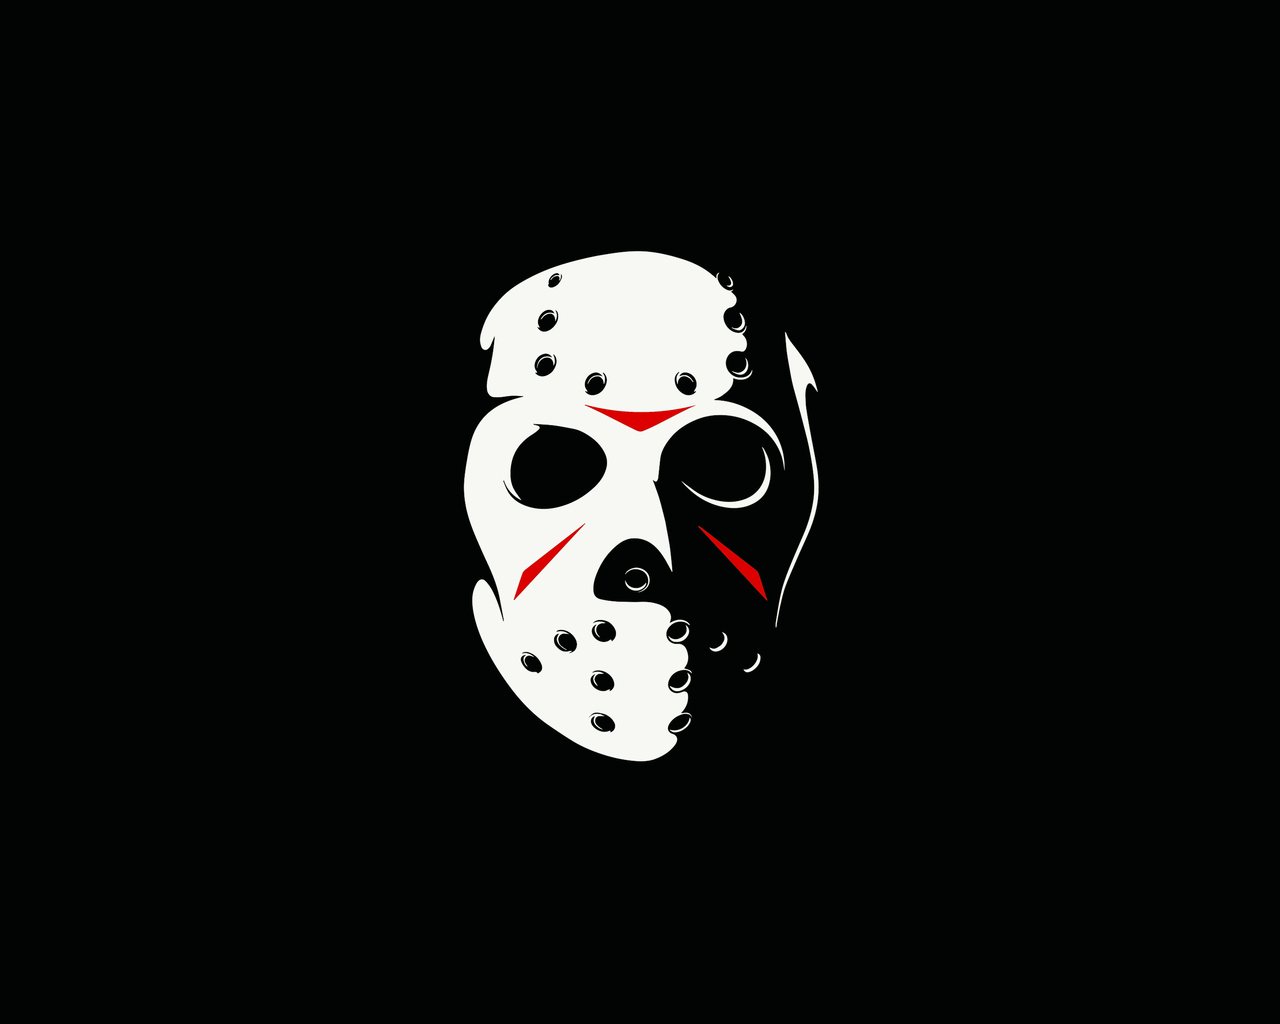 1280x1024 Friday The 13th The Game Minimalism Dark 4k 1280x1024